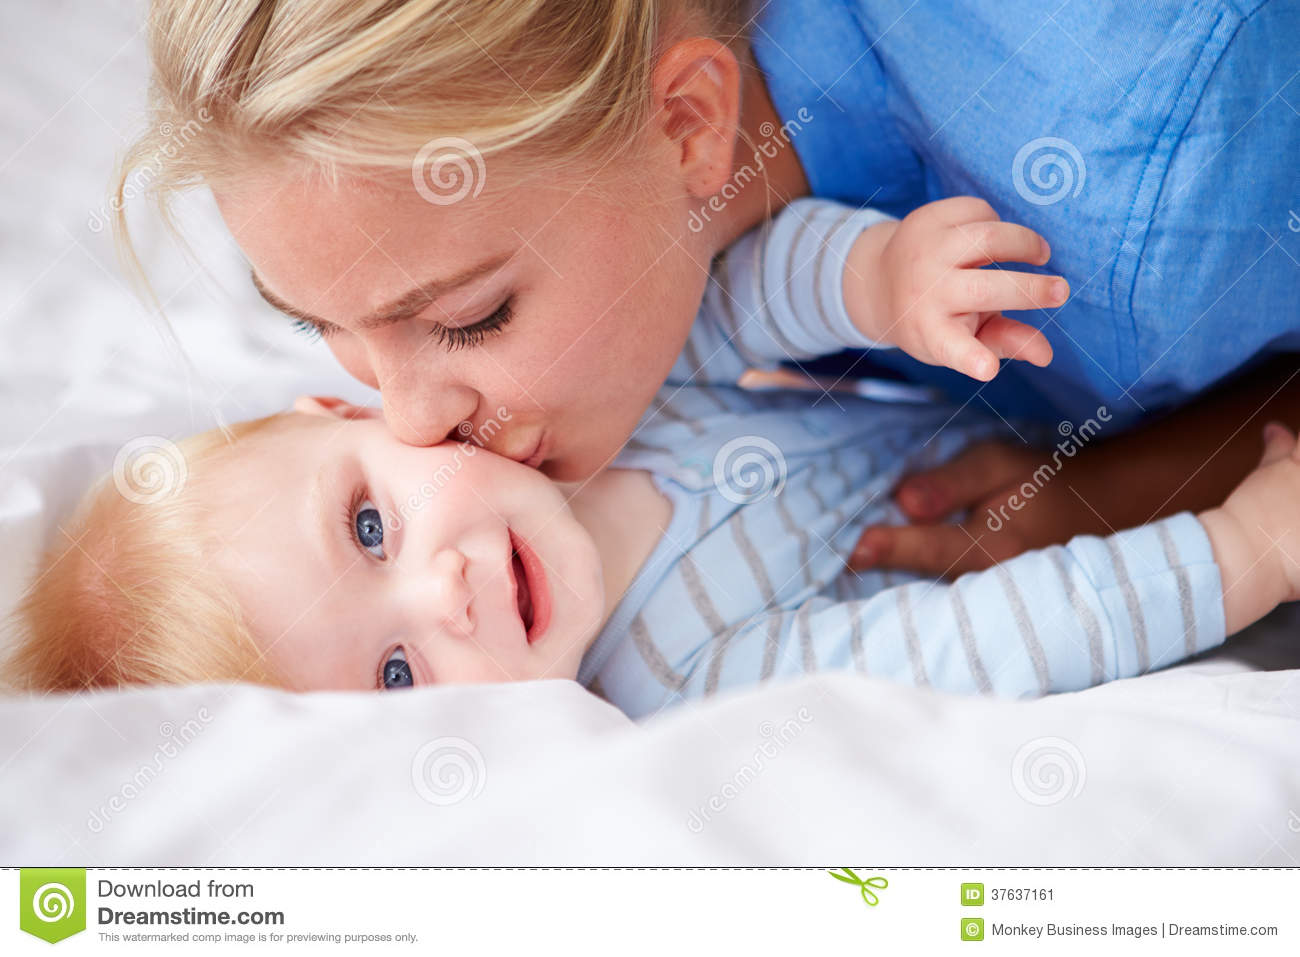 mother kissing baby son as they lie in bed together stock image image 37637161. Black Bedroom Furniture Sets. Home Design Ideas